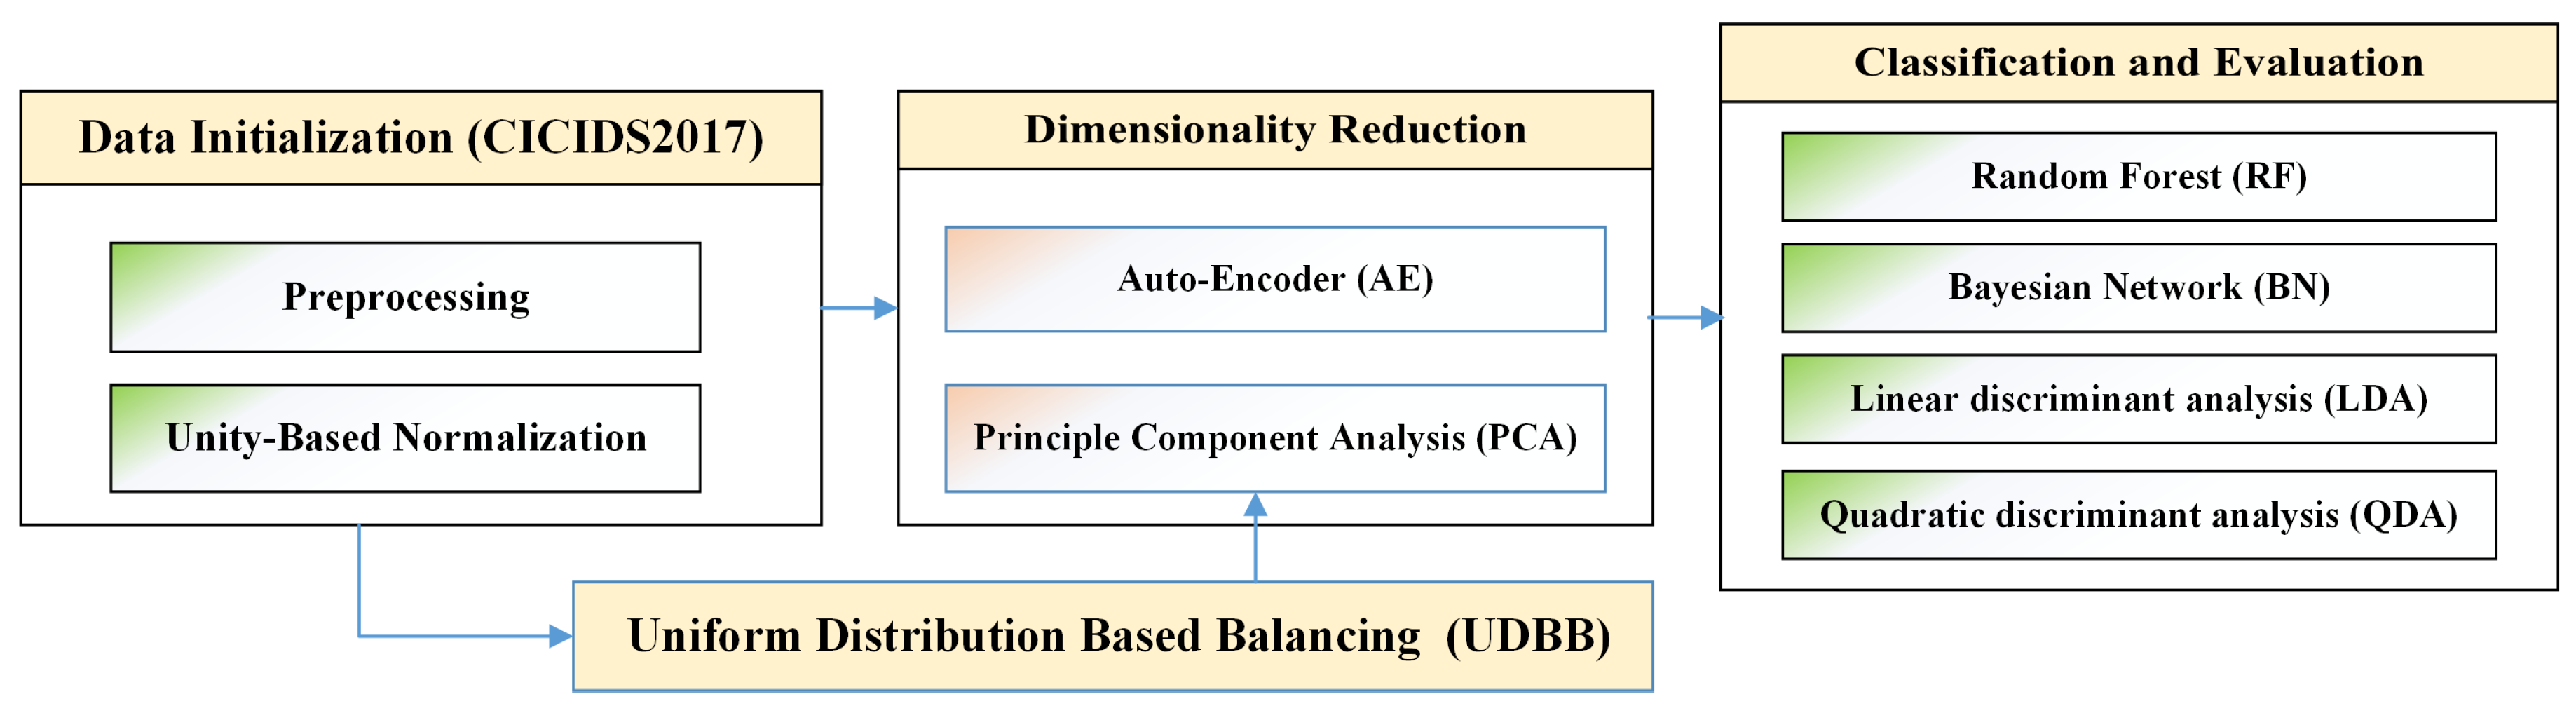 Electronics | Free Full-Text | Features Dimensionality